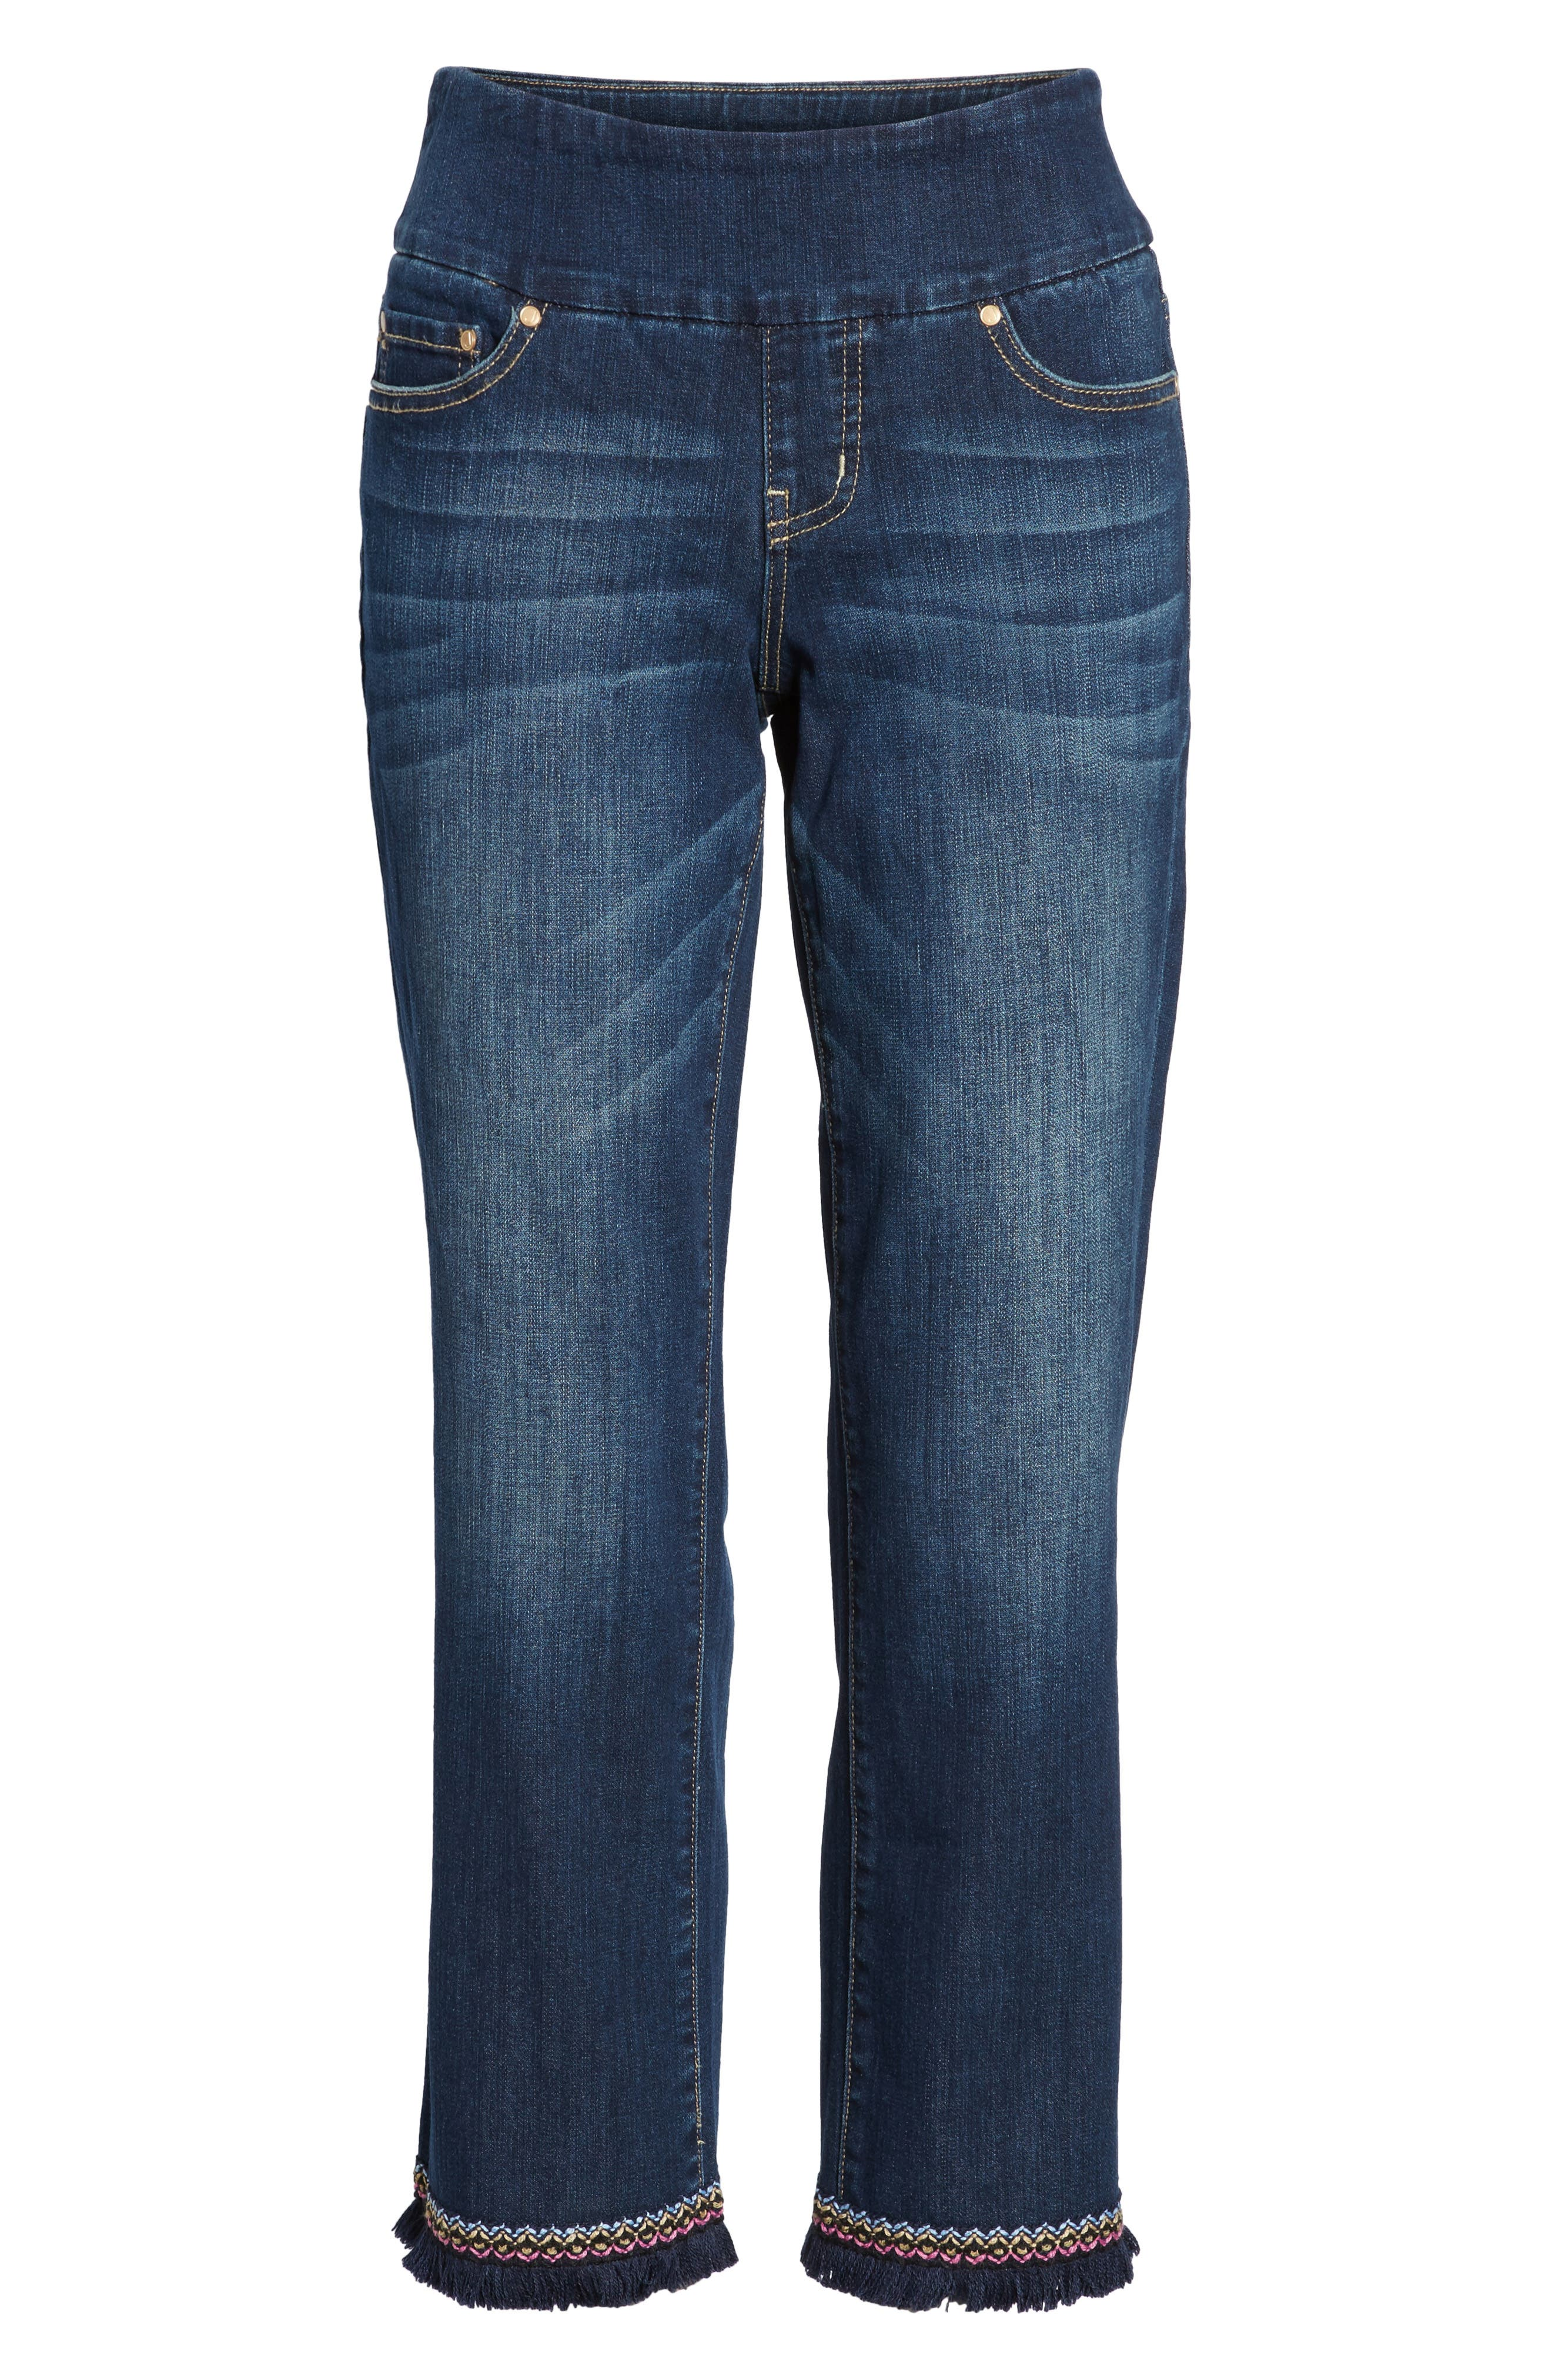 Peri Embroidery Fringe Jeans,                             Alternate thumbnail 7, color,                             Med Indigo